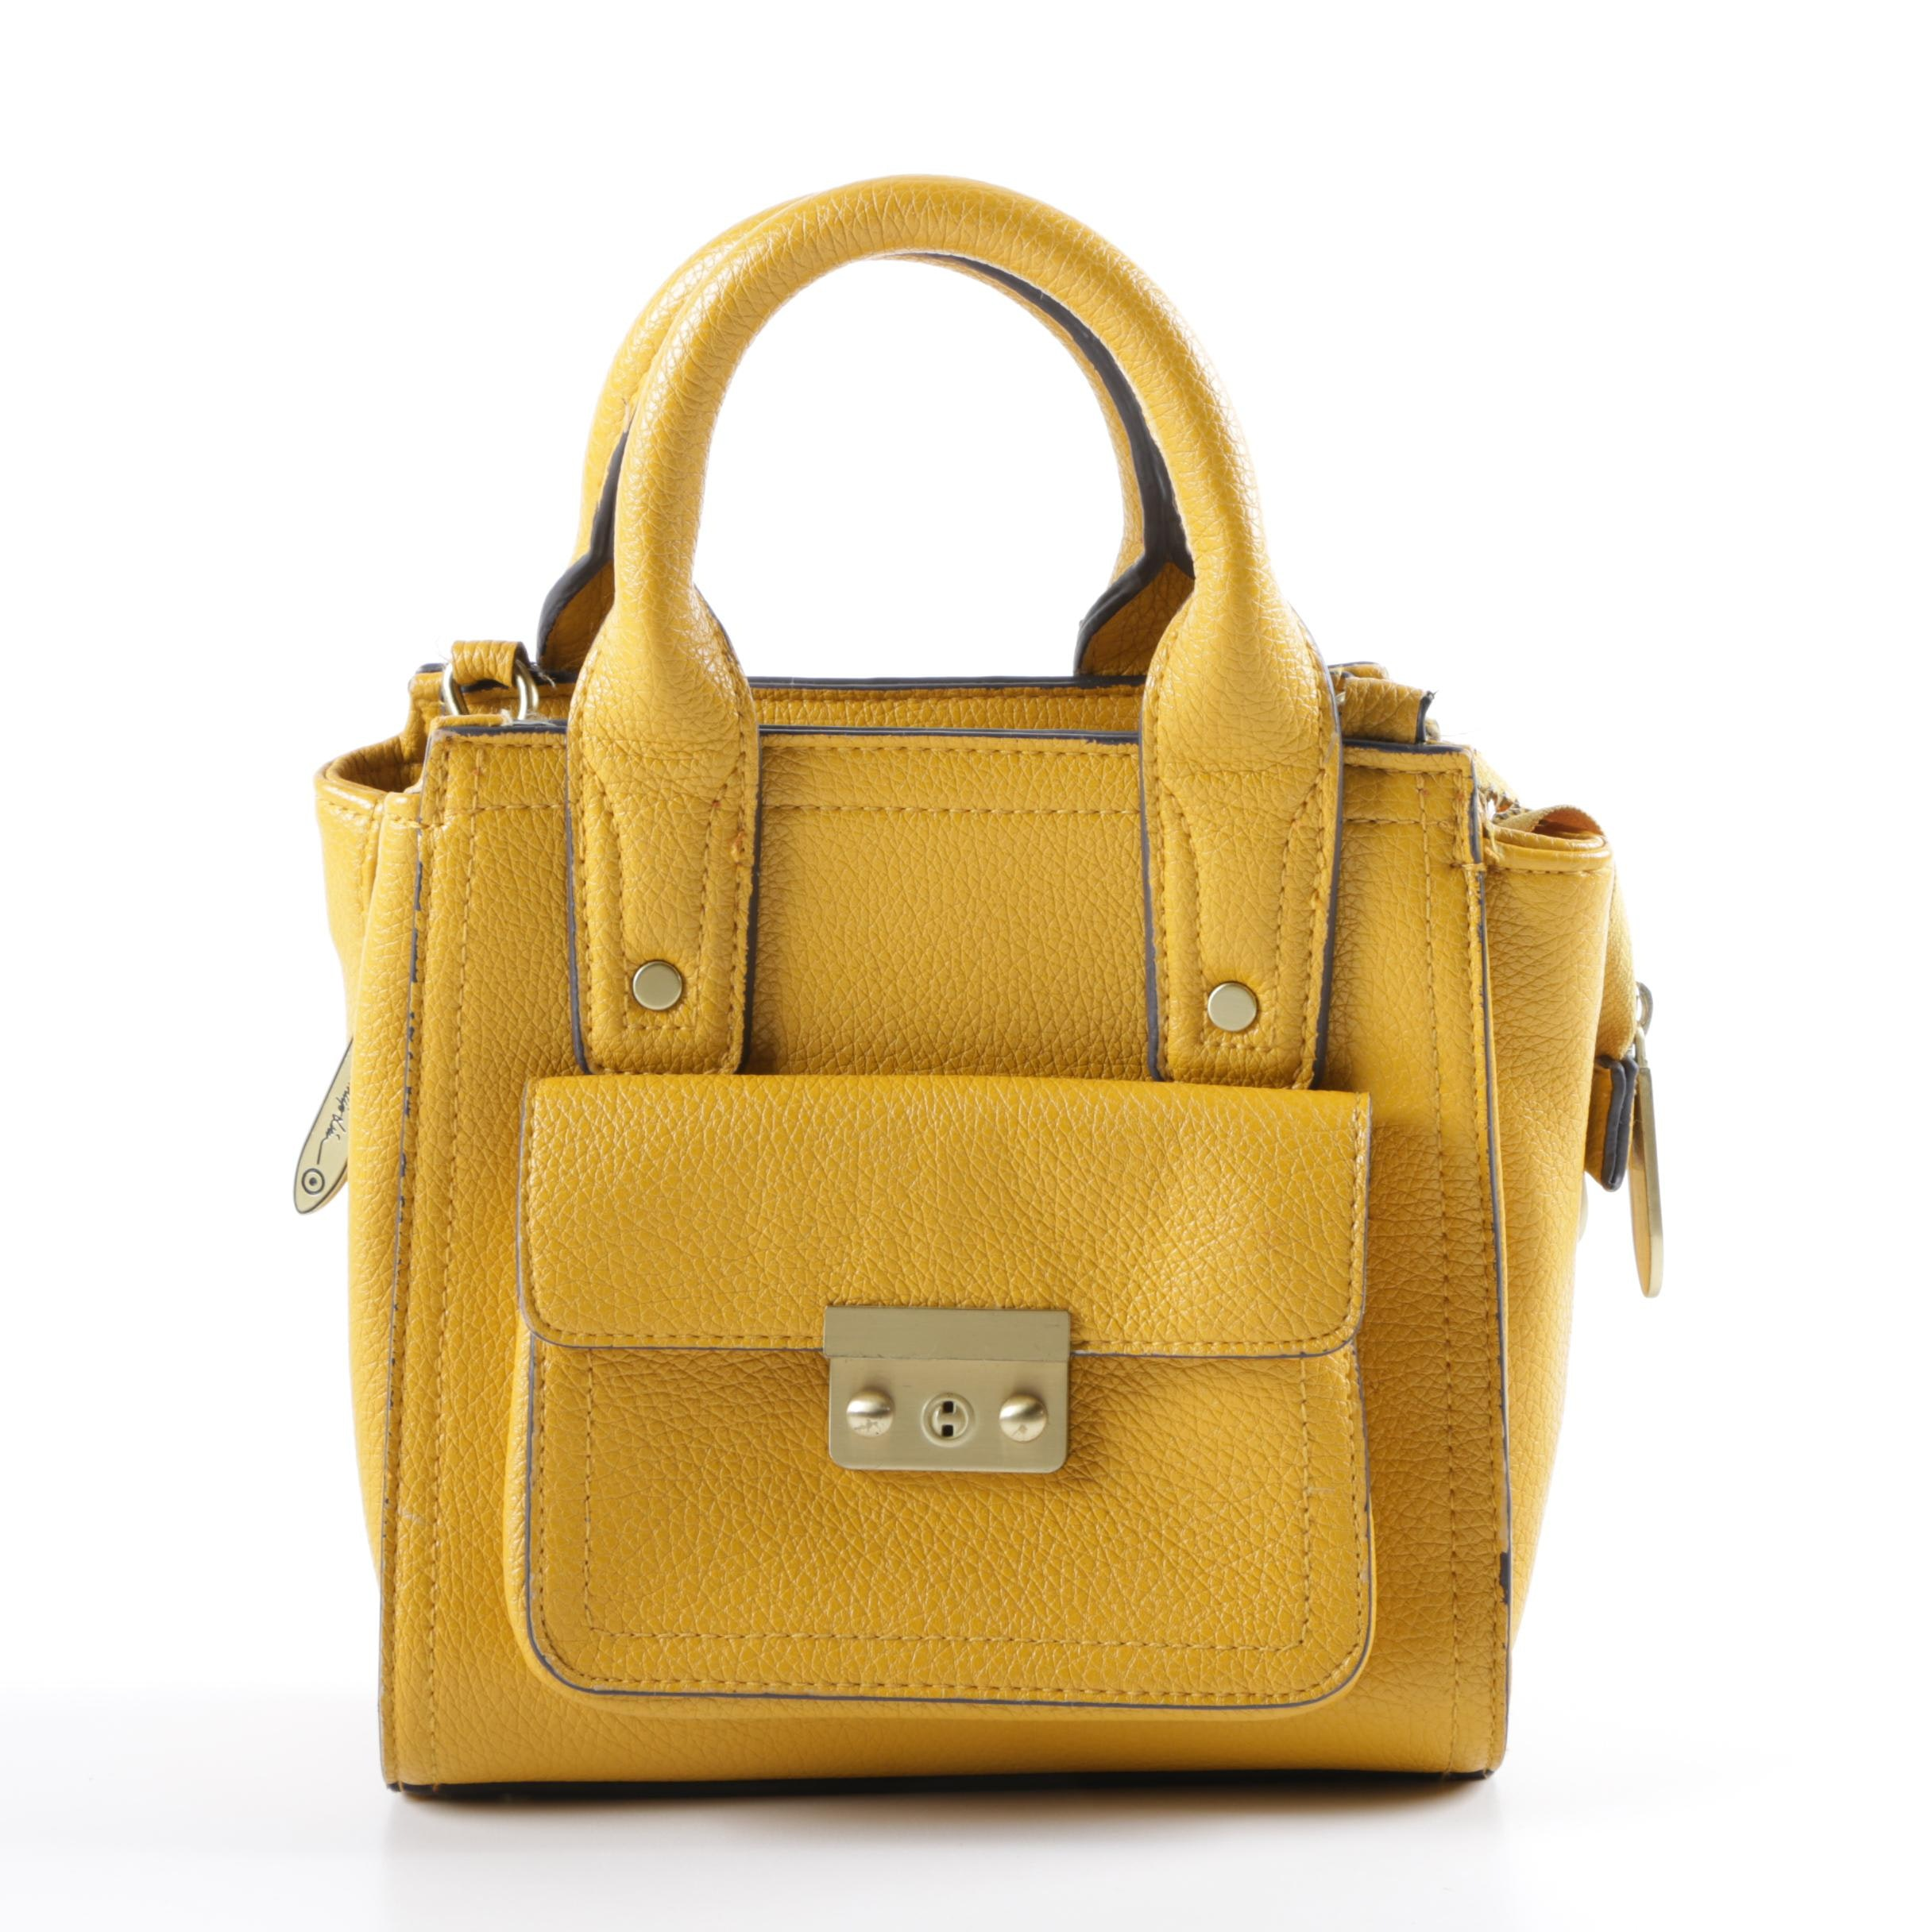 3.1 Phillip Lim for Target with Gusset Yellow Faux Leather Handbag